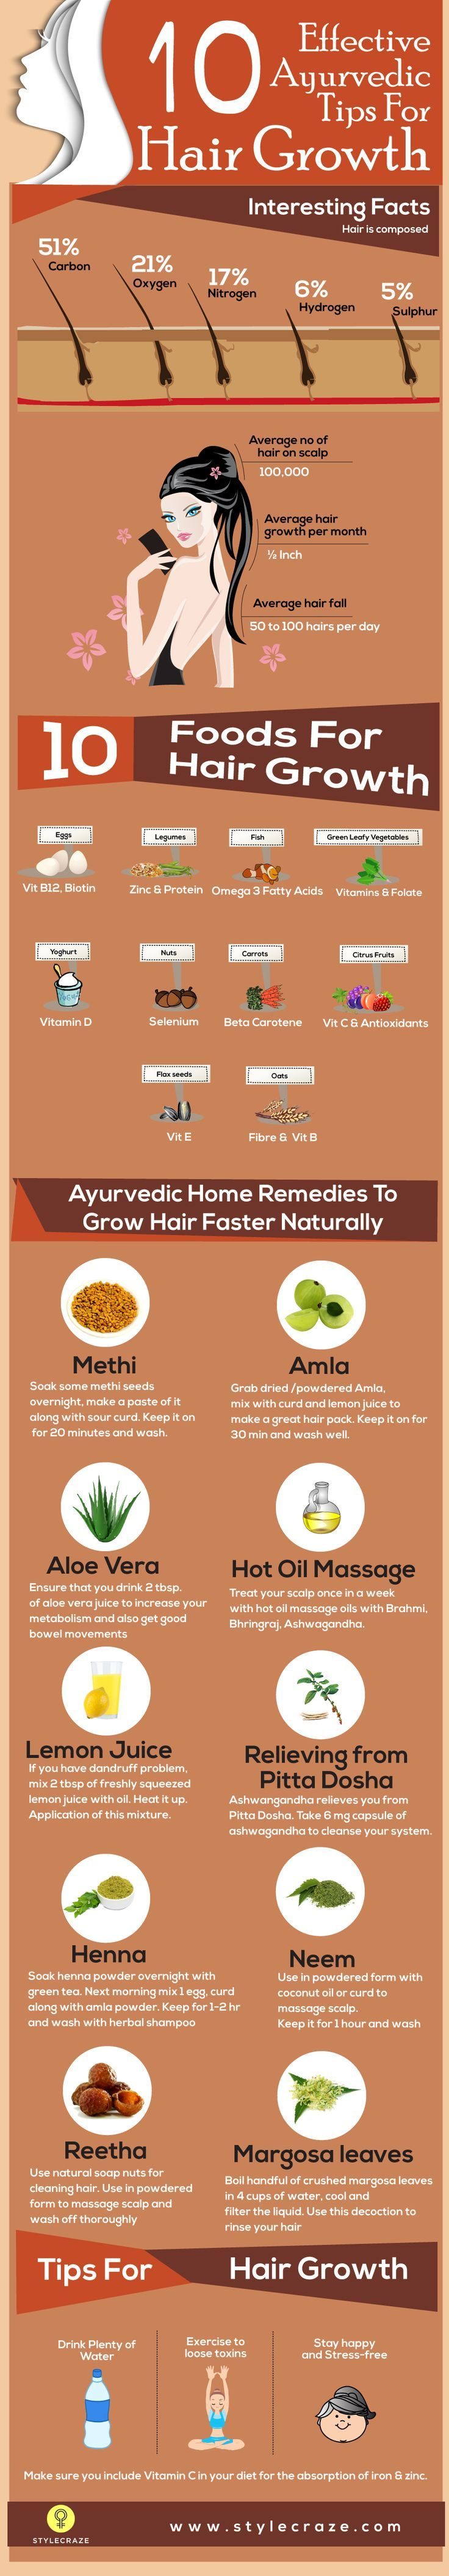 Nothing works better than natural ingredients for hair growth and care! Here are 10 effective ayurvedic home remedies for hair growth - loved & pinned by www.omved.com